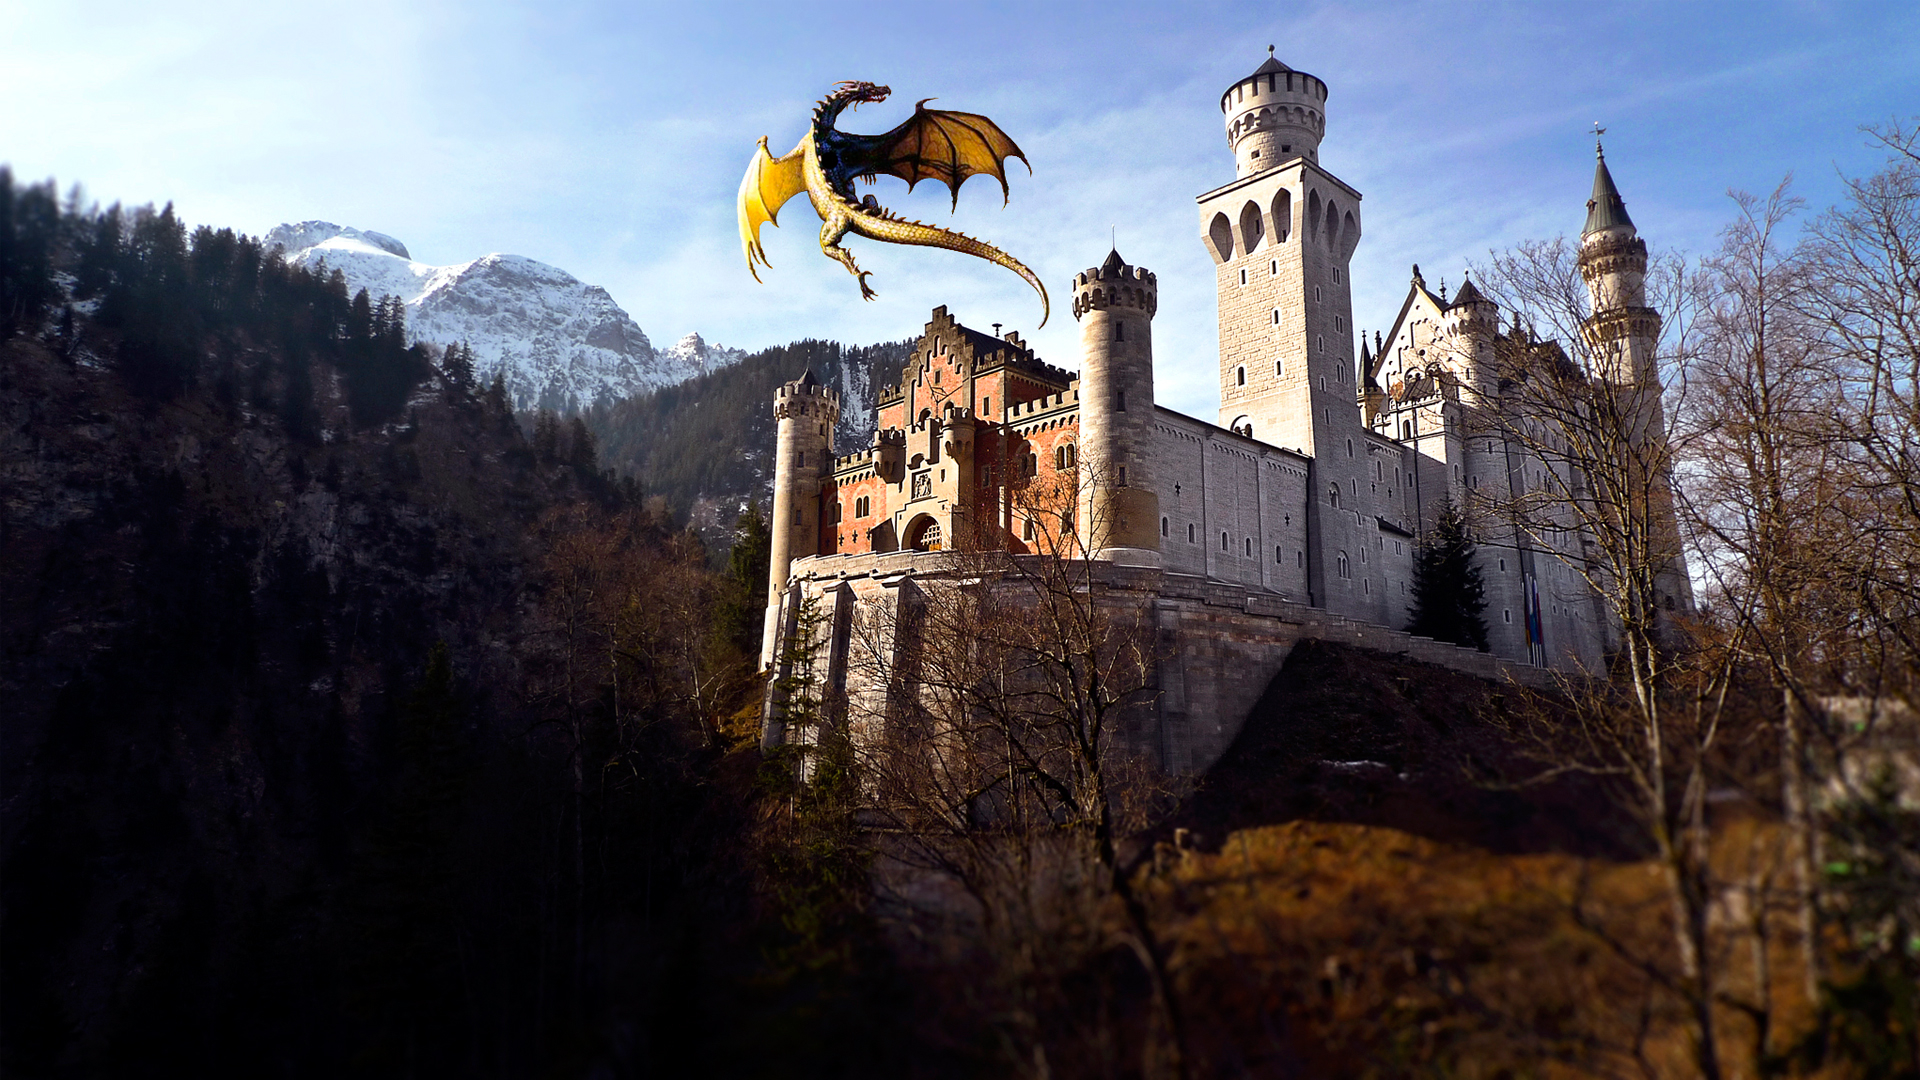 Dragon & Castle 1562.87 Kb